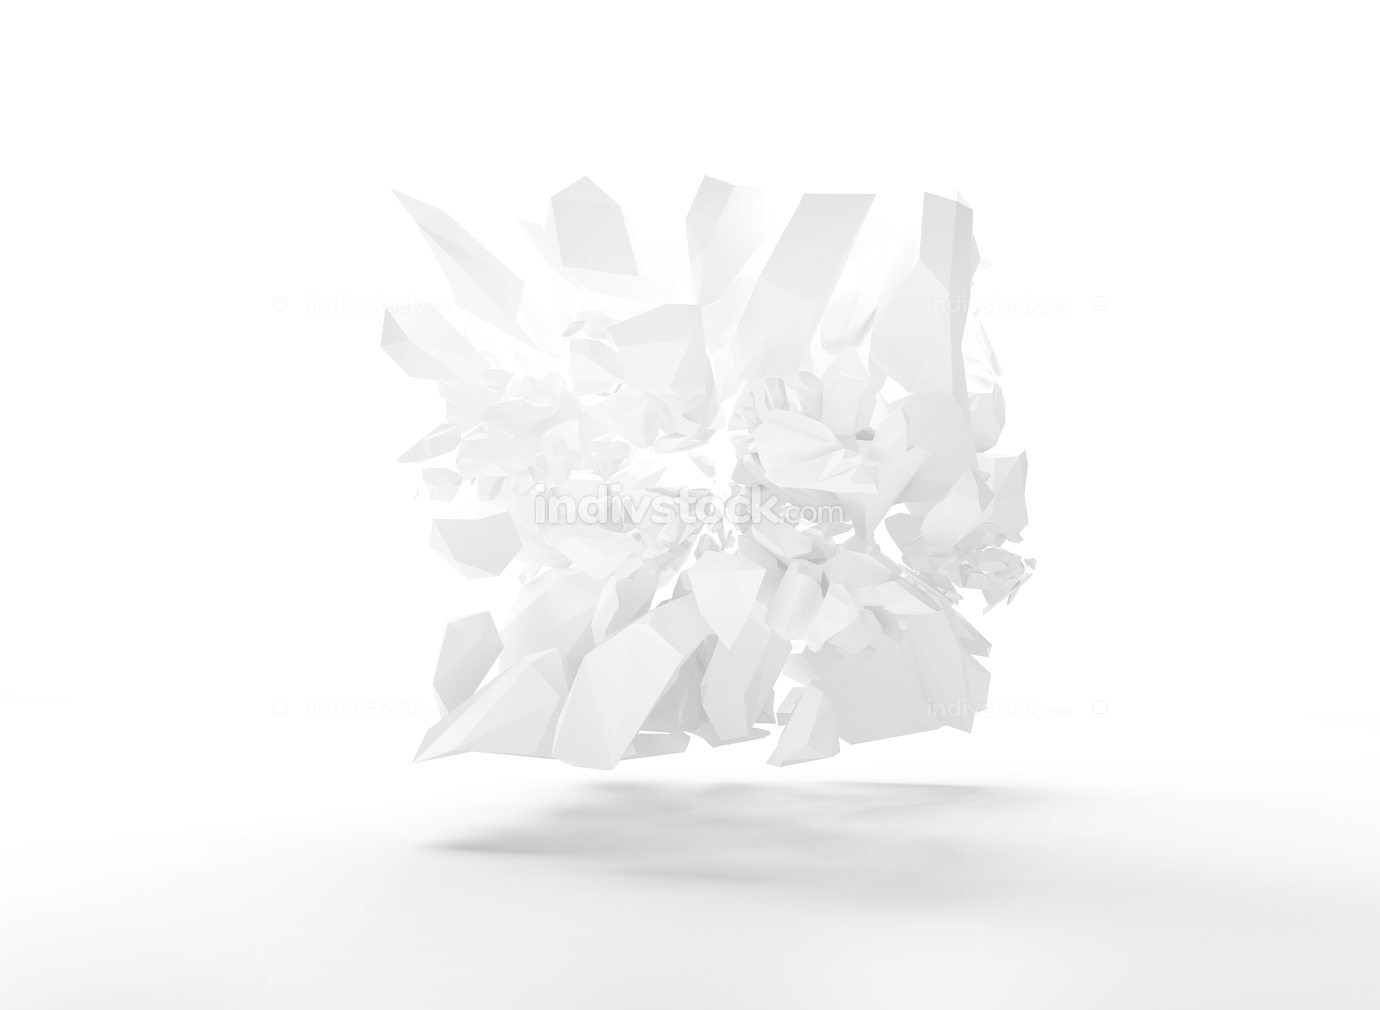 solid structure bursting 3d render